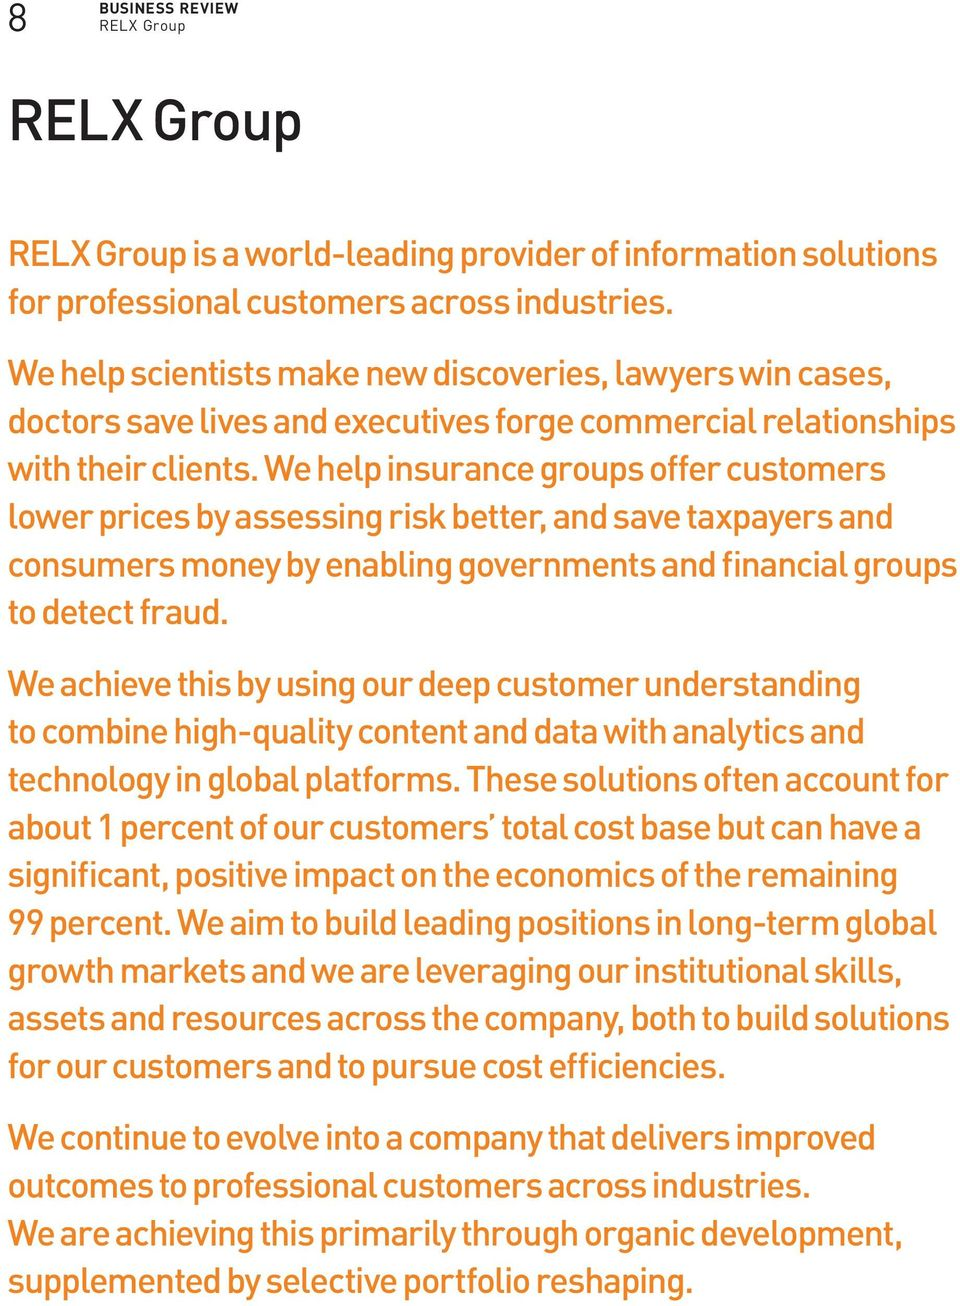 We help insurance groups offer customers lower prices by assessing risk better, and save taxpayers and consumers money by enabling governments and financial groups to detect fraud.